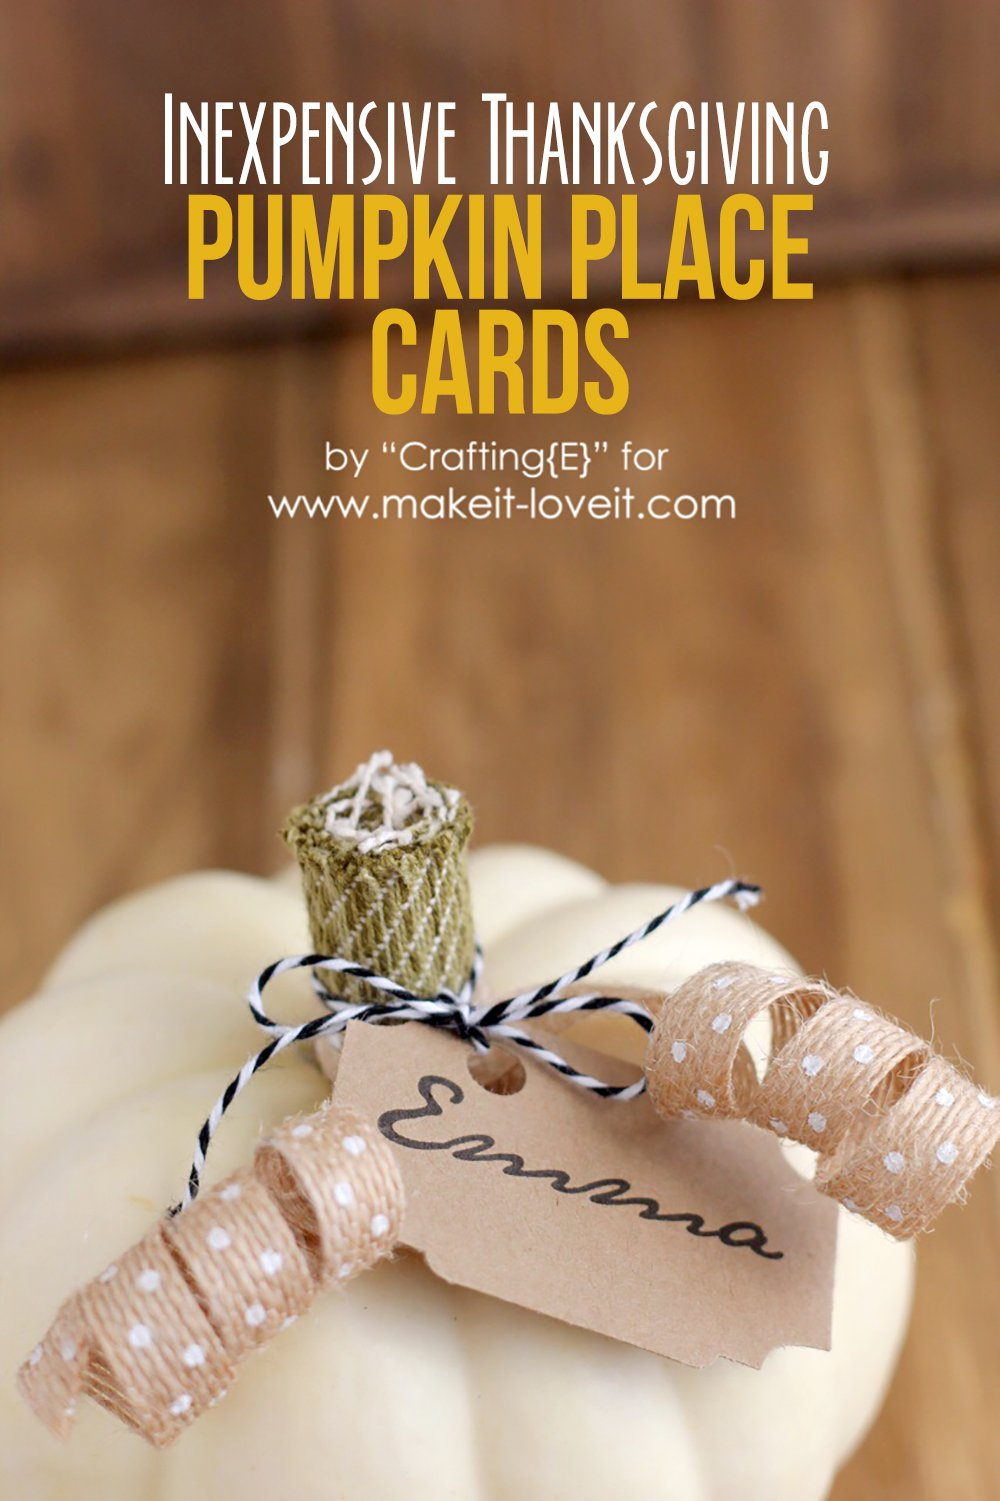 Inexpensive Thanksgiving Pumpkin Place Cards